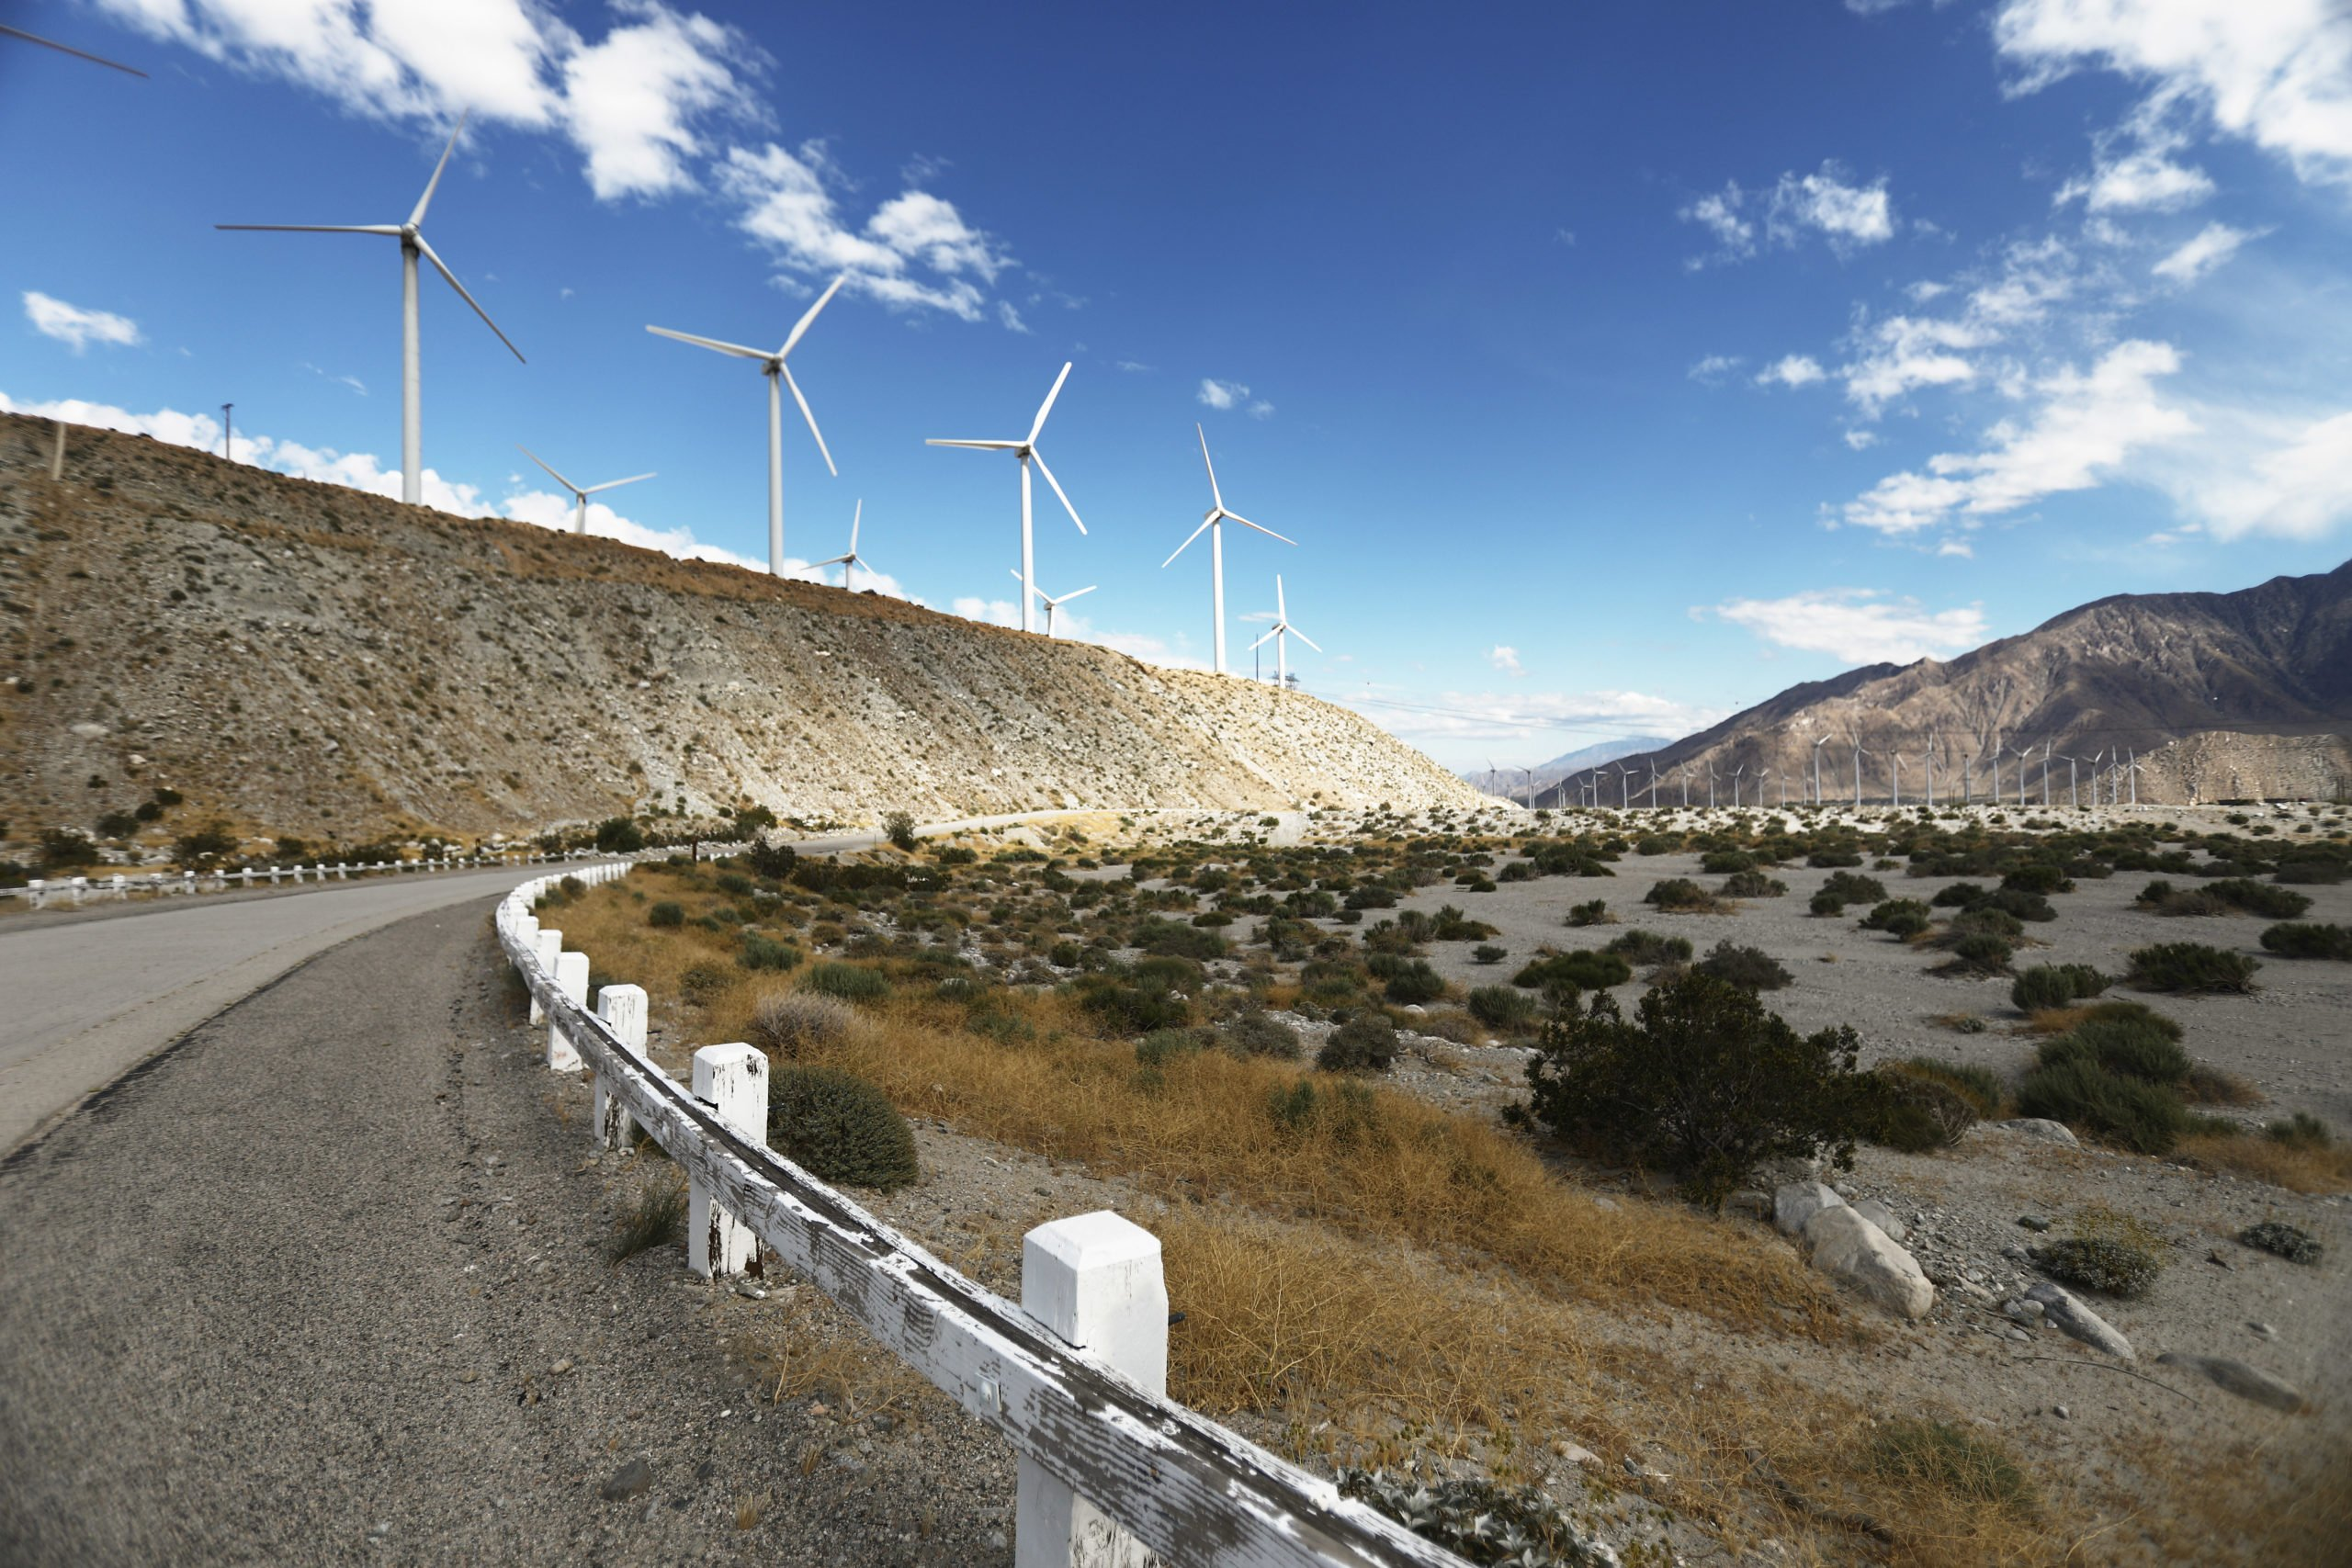 Wind turbines operate at a wind farm on May 6, 2019 in Whitewater, California. (Mario Tama/Getty Images)